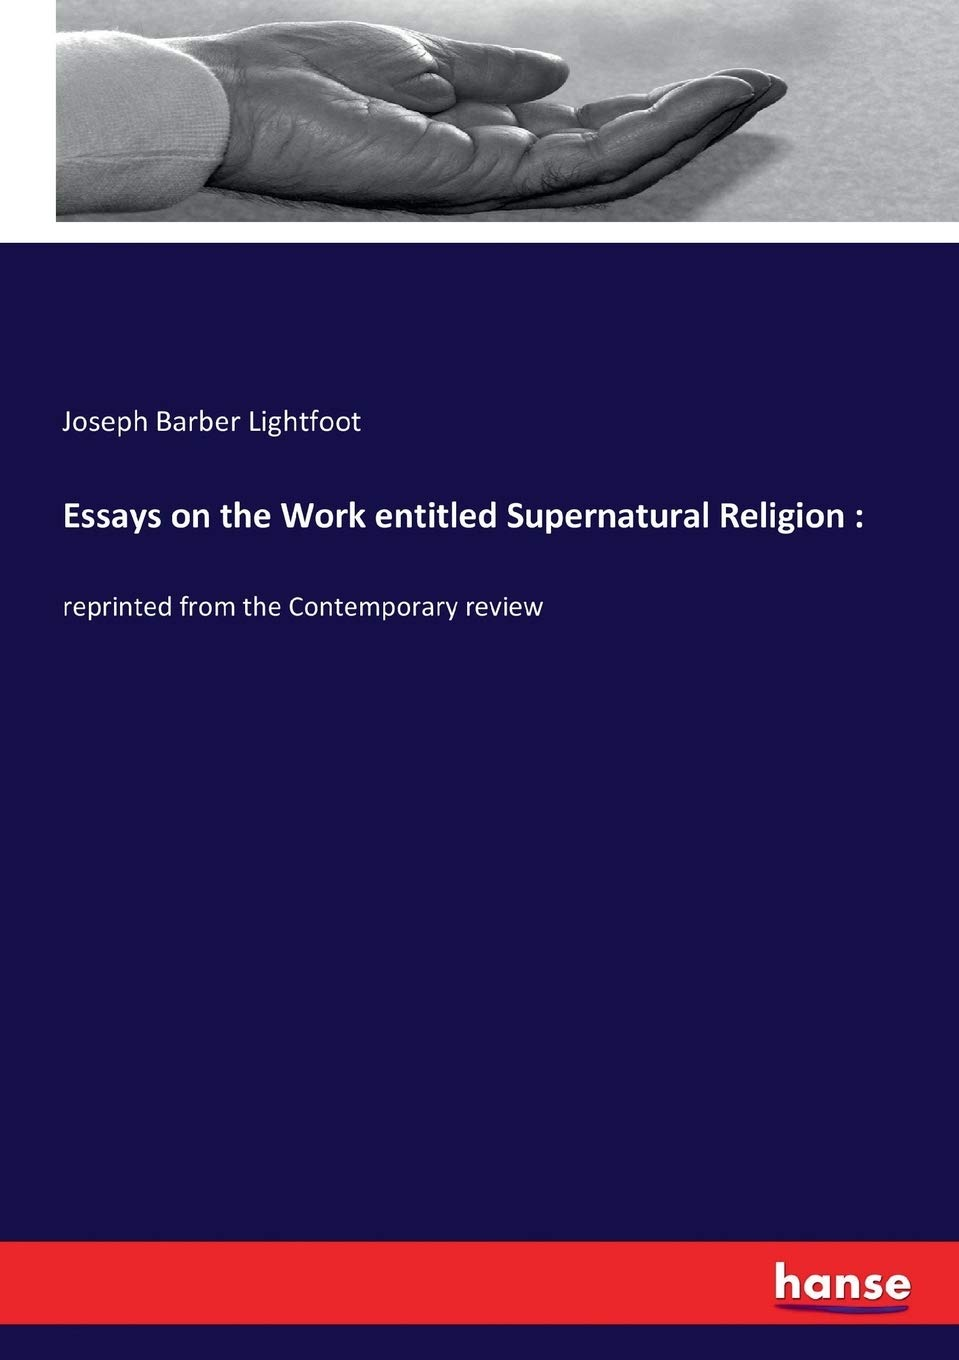 Essays on the Work entitled Supernatural Religion: :reprinted from the Contemporary review